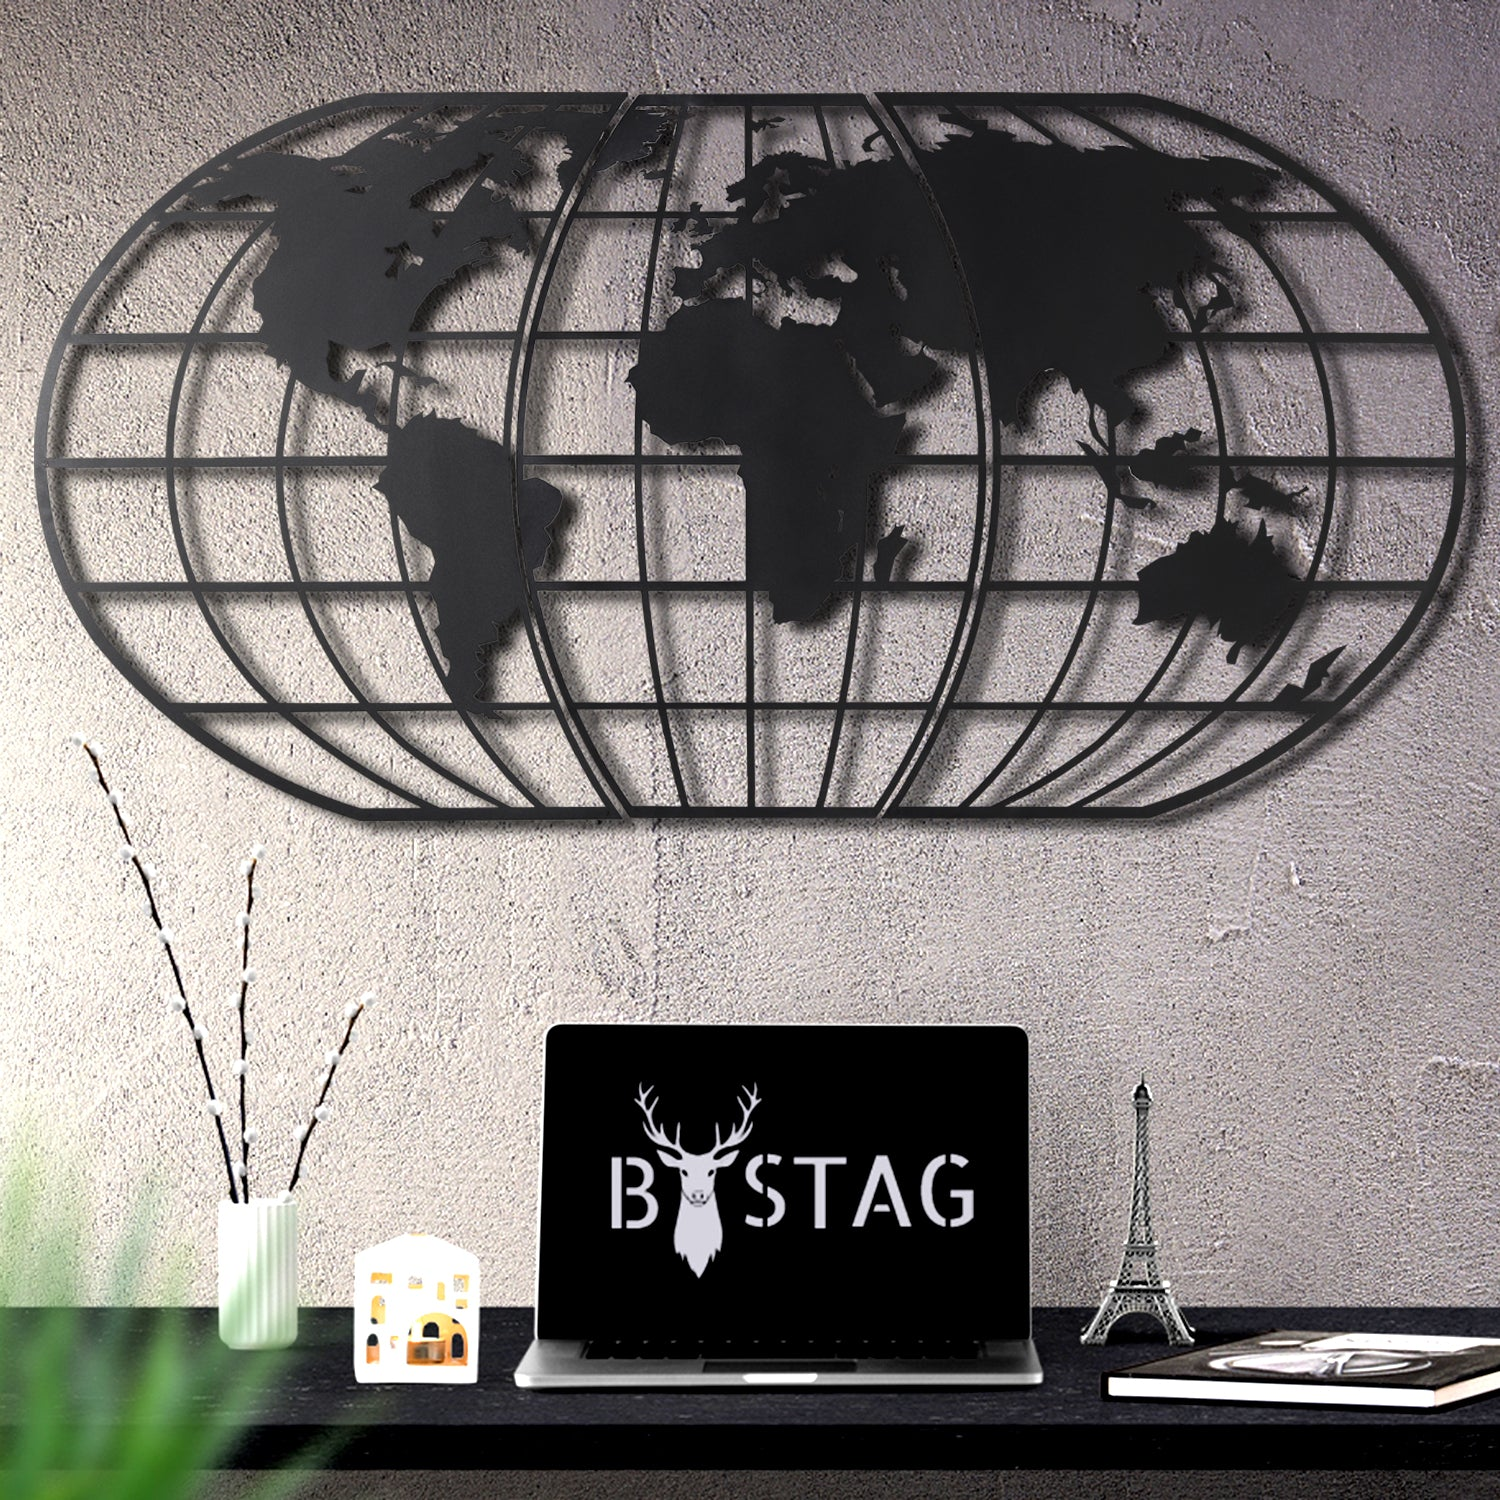 Bystag metal dekoratif duvar aksesuarı dünya haritası- Bystag metal wall art-wall art-wall decor-metal wall decor-world map-metal world map-black world map globe-globe